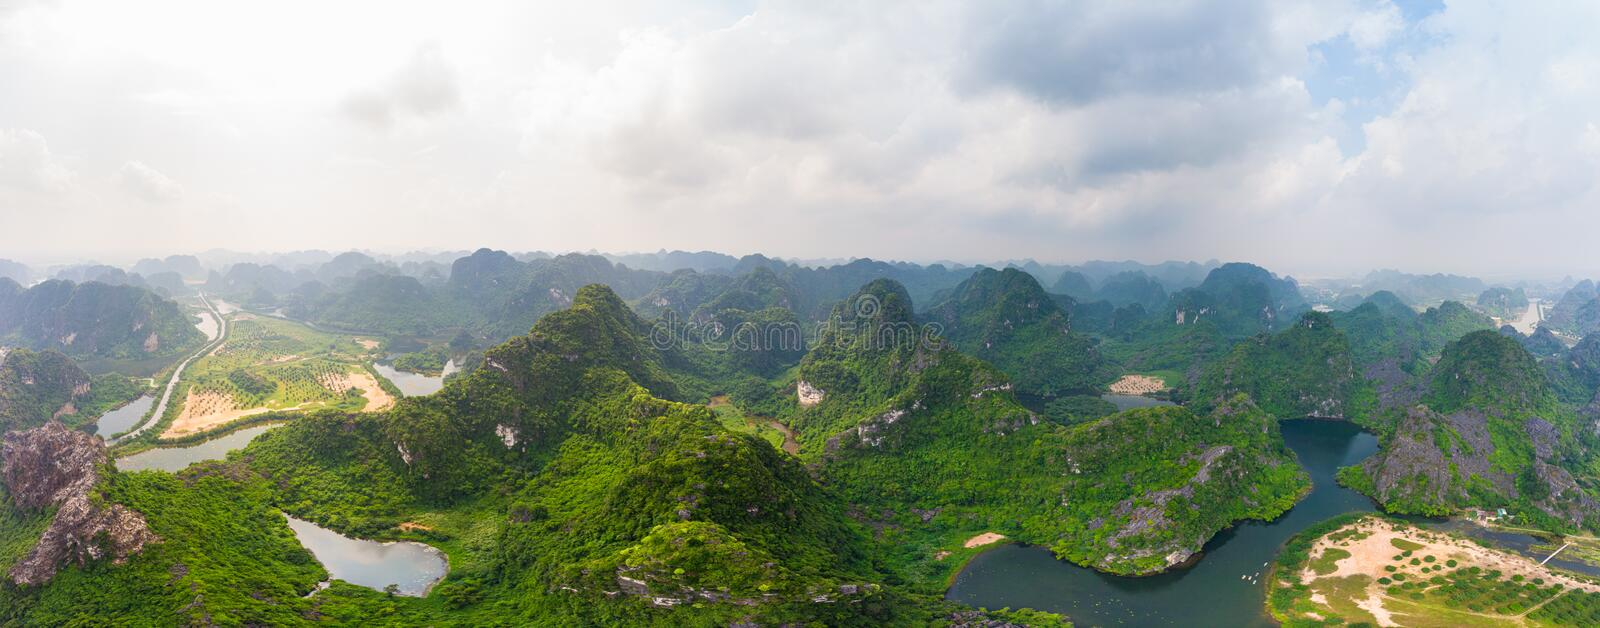 Aerial view of Ninh Binh region, Trang An tourist attraction, UNESCO World Heritage Site, Scenic river crawling through karst stock photo